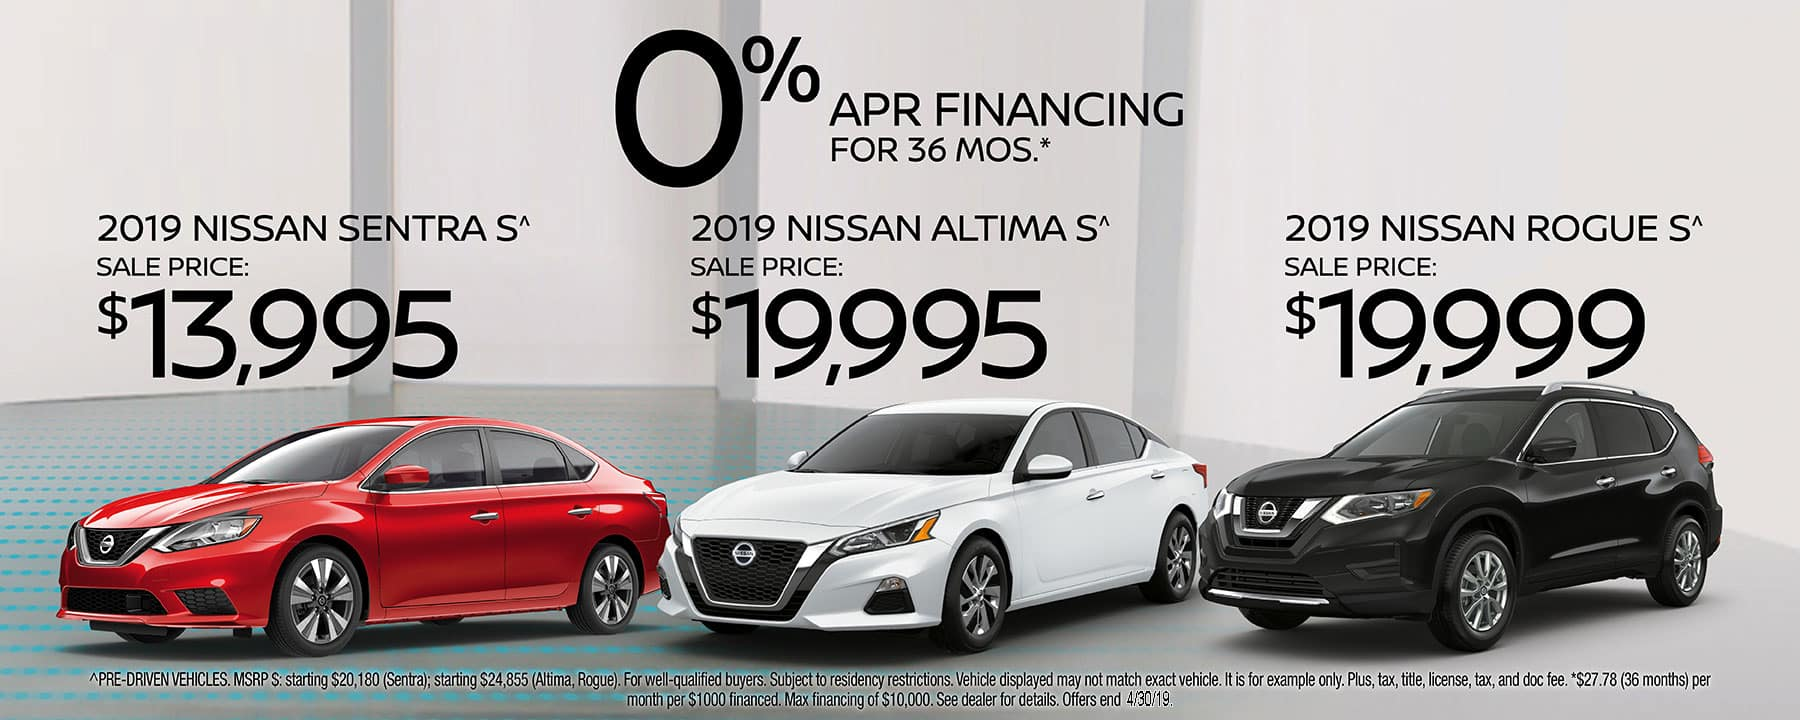 Pre-Driven 2019 Vehicles at prices you won't see anywhere else. Choose between 2019 Sentra, 2019 Altima, or 2019 Rogue at Star Nissan!